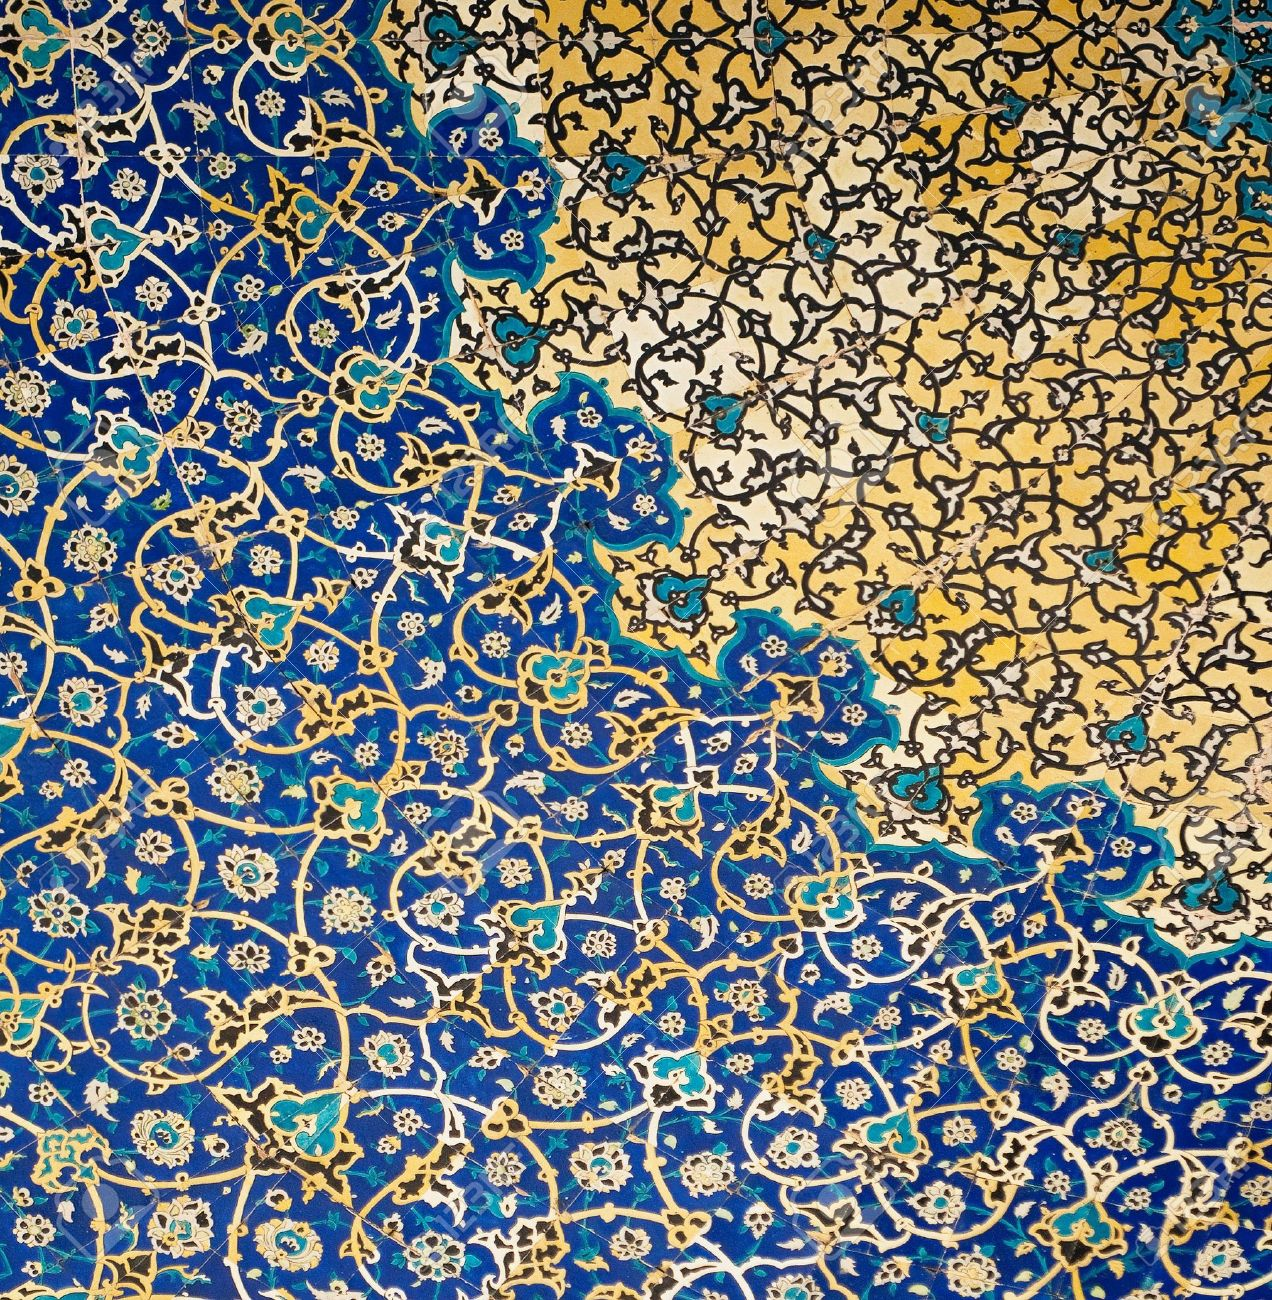 Dome of the mosque, oriental ornaments from Isfahan, Iran Stock Photo - 5541825